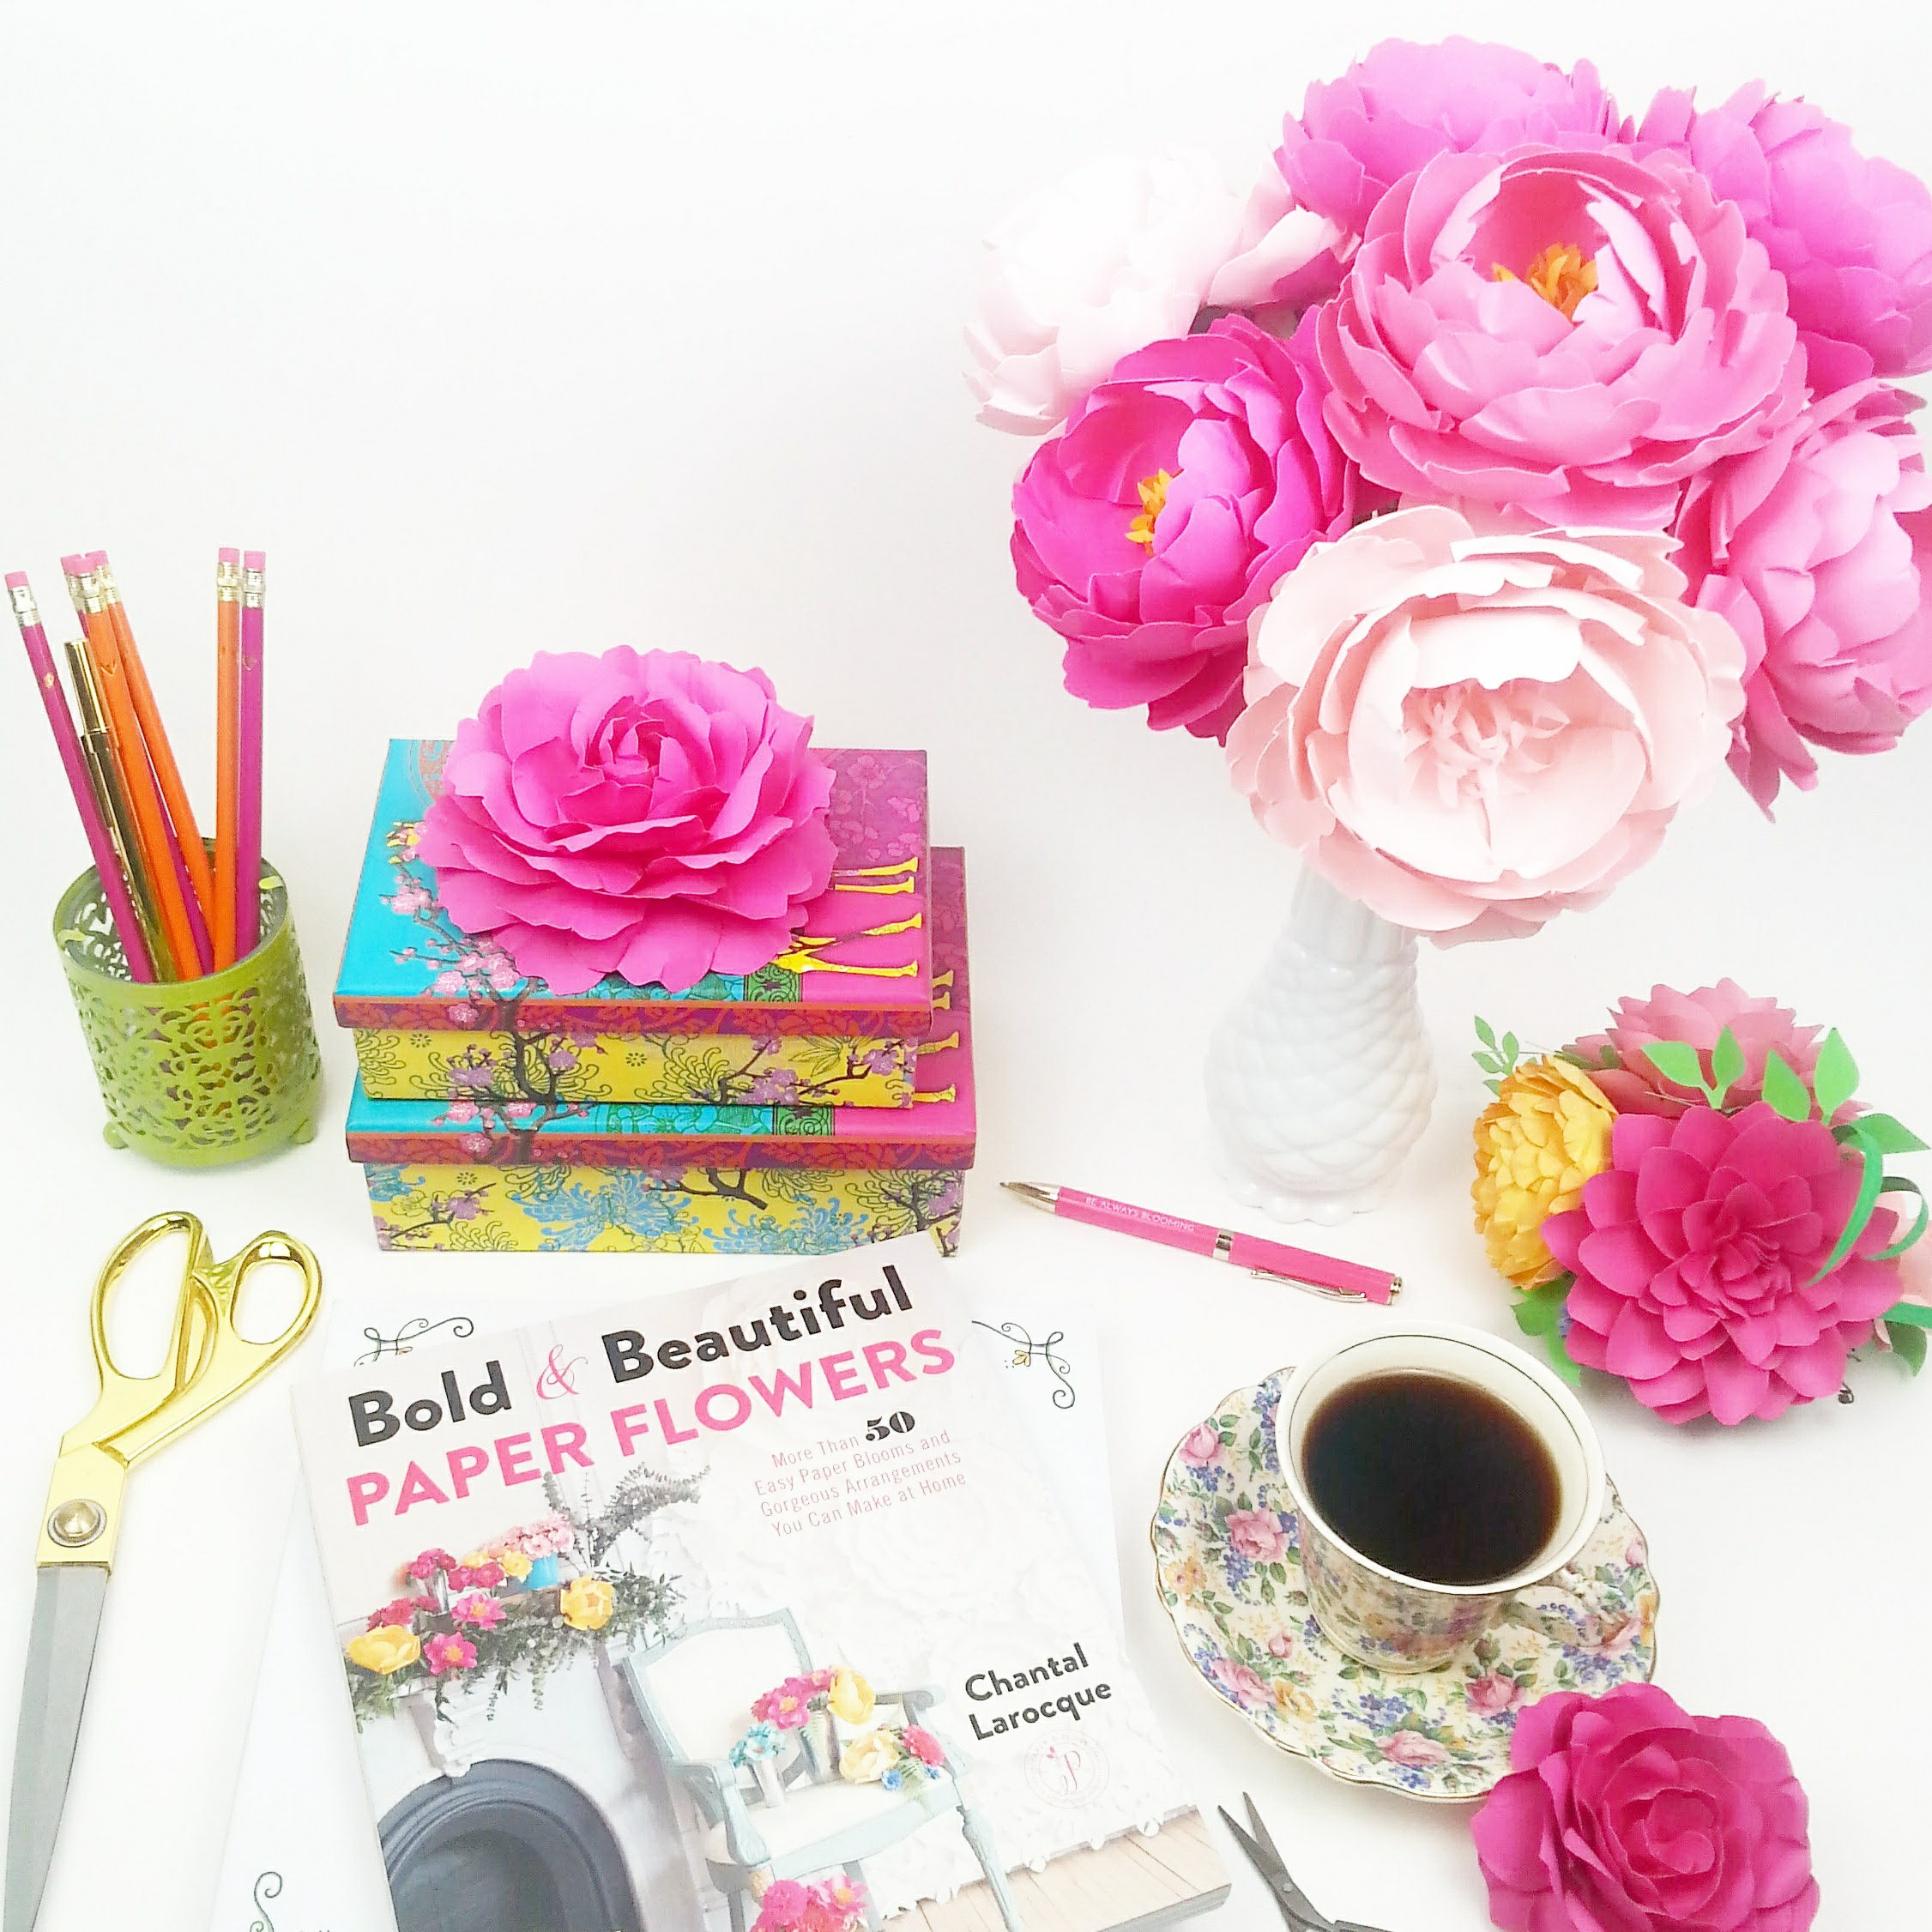 New book bold beautiful paper flowers more than 50 easy paper new book bold beautiful paper flowers more than 50 easy paper blooms and gorgeous arrangements you can make at home mightylinksfo